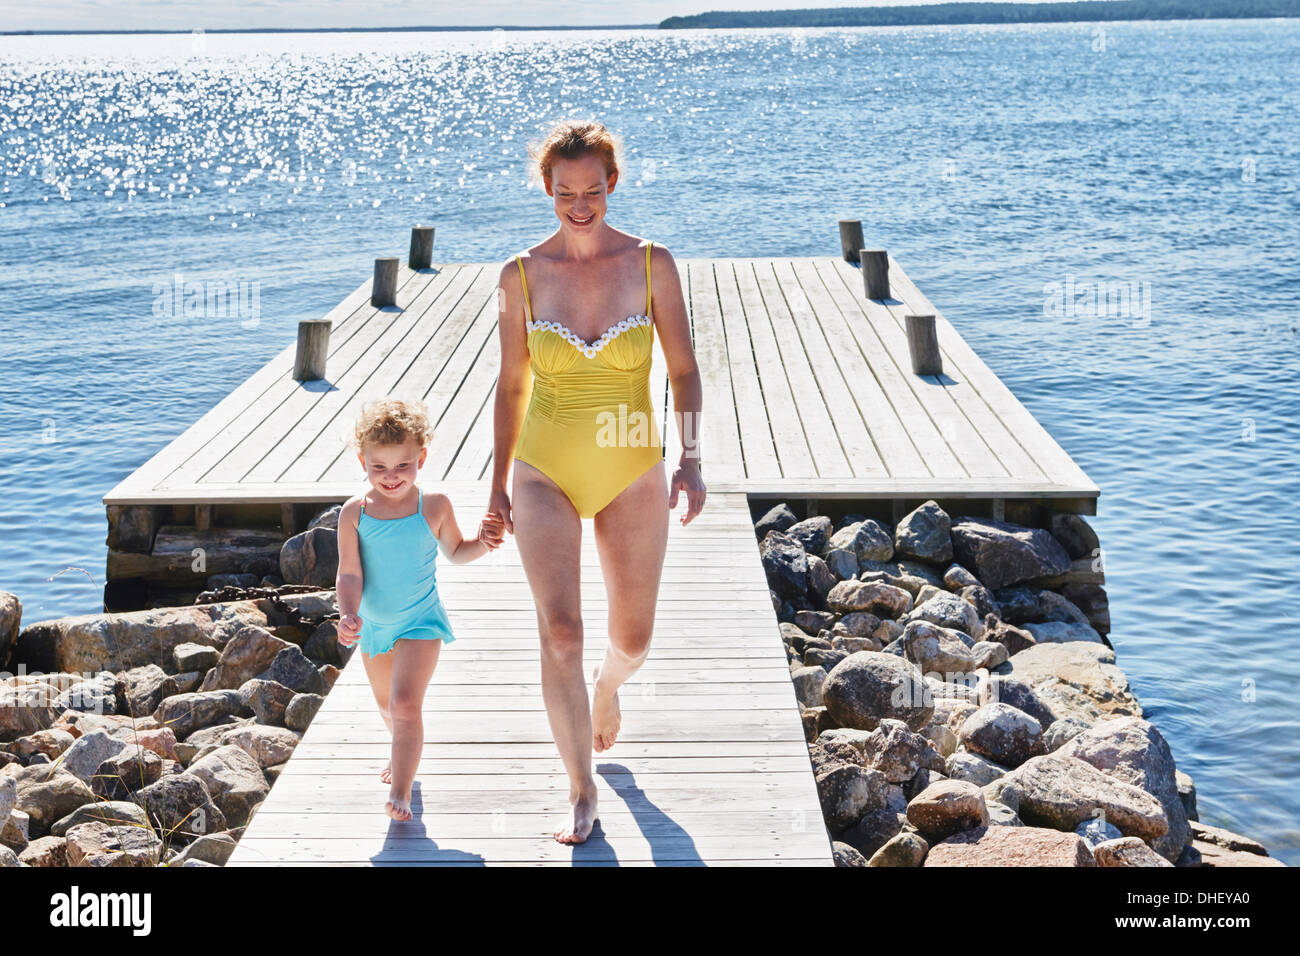 Mother and daughter hand in hand, Utvalnas, Gavle, Sweden - Stock Image